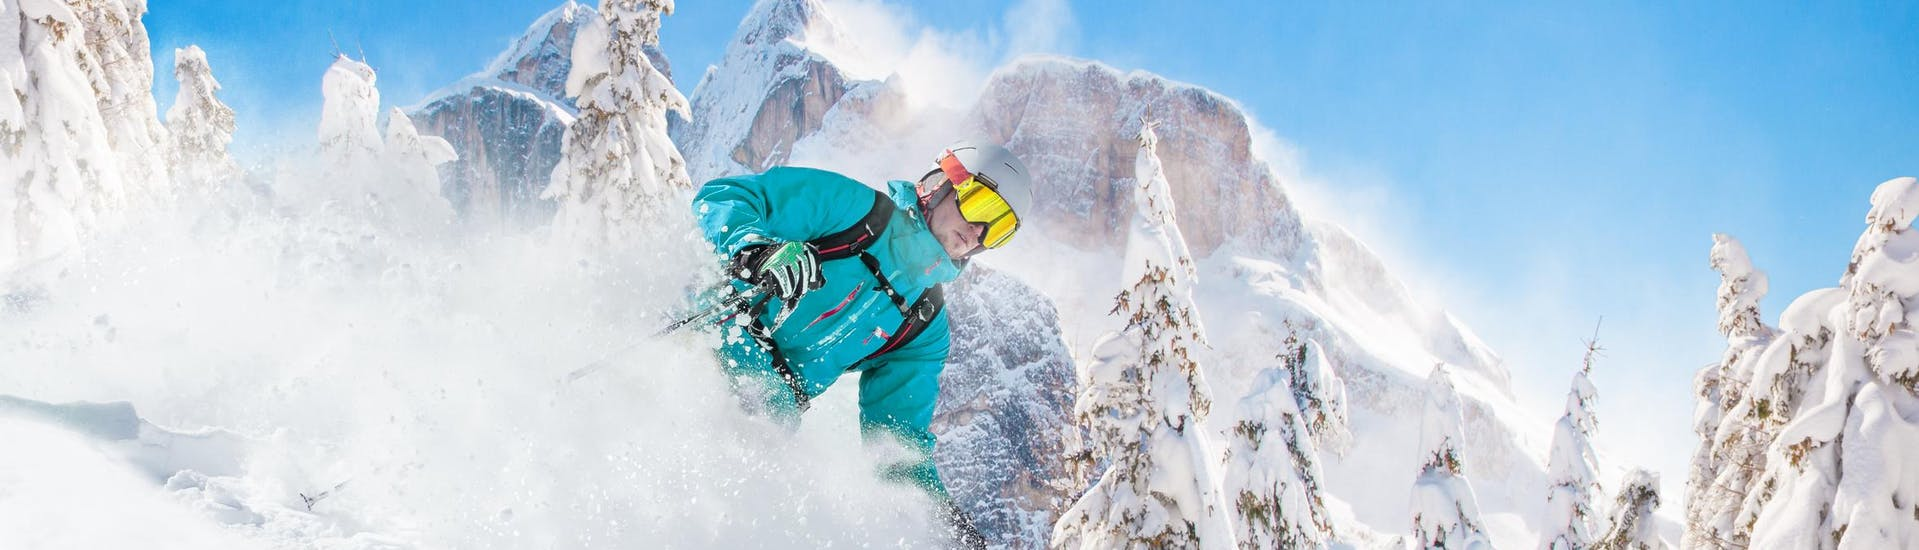 """Freeriding Private """"Family & Friends"""" - All Levels with Ski- & Snowboardschule Ankogel - Hero image"""